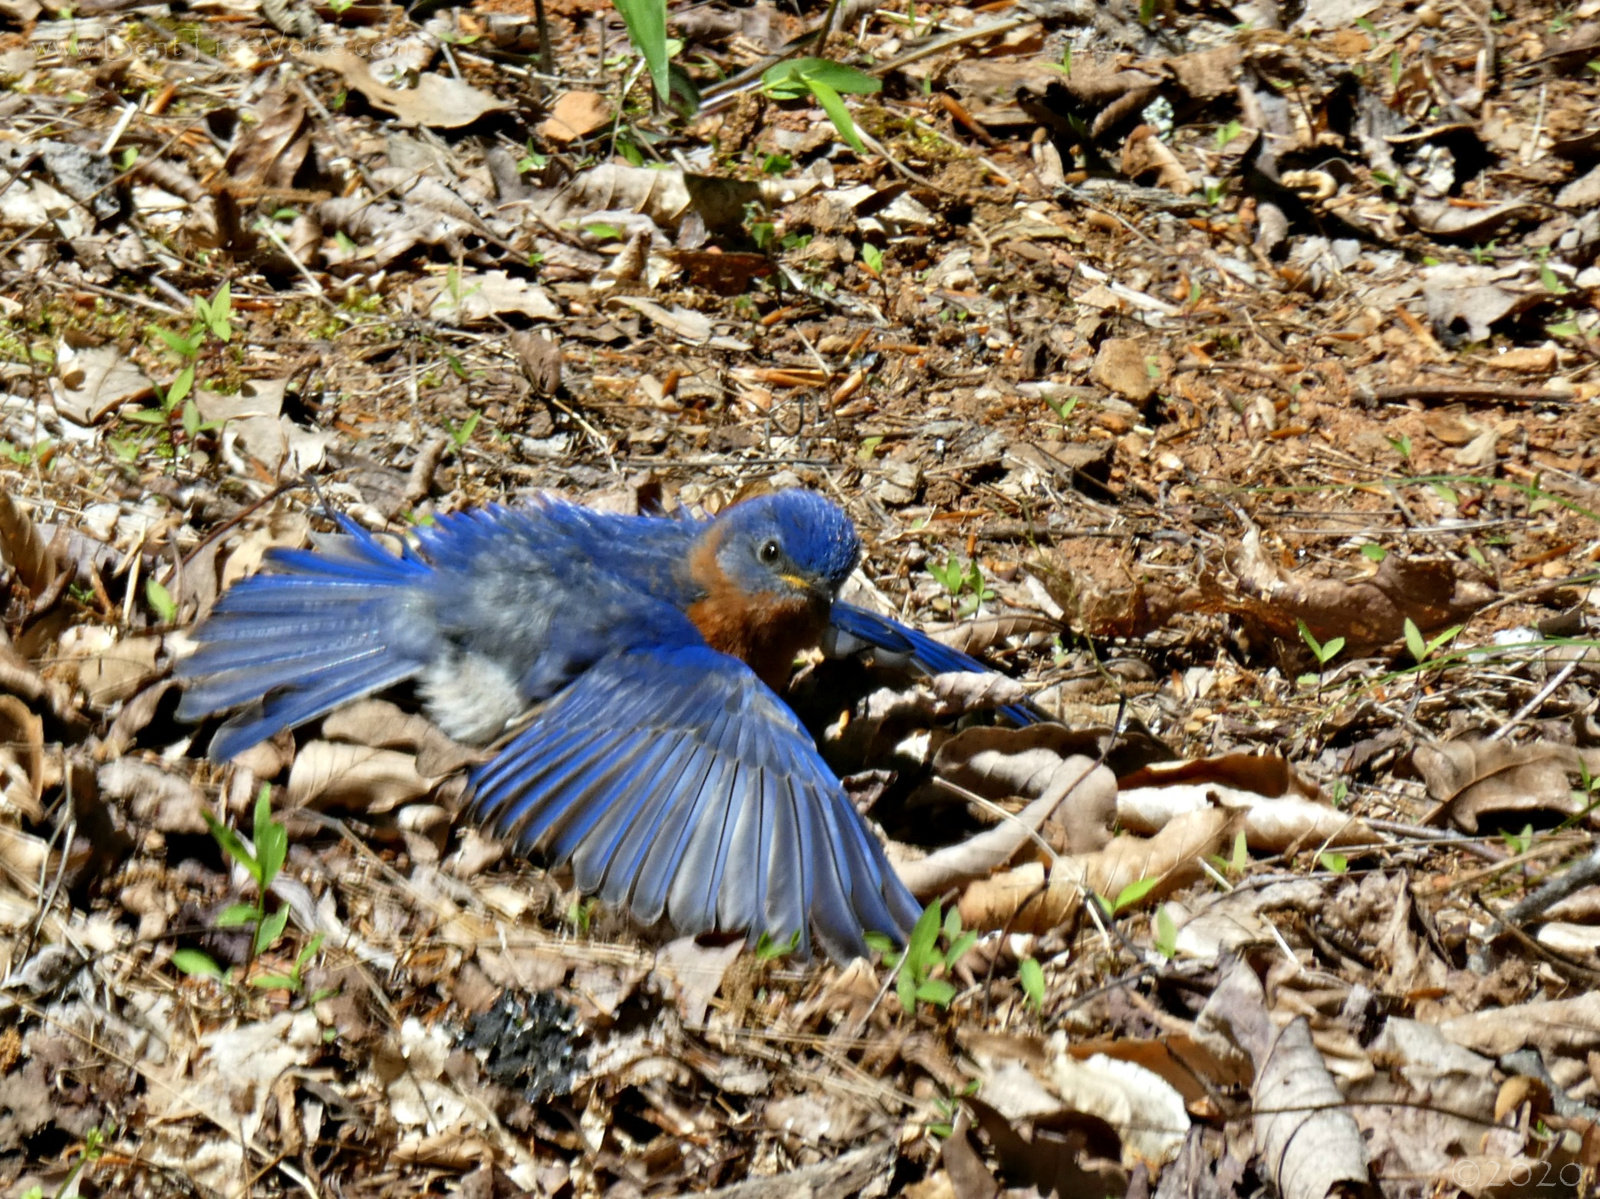 May 2, 2020 - Bluebird sunbathing